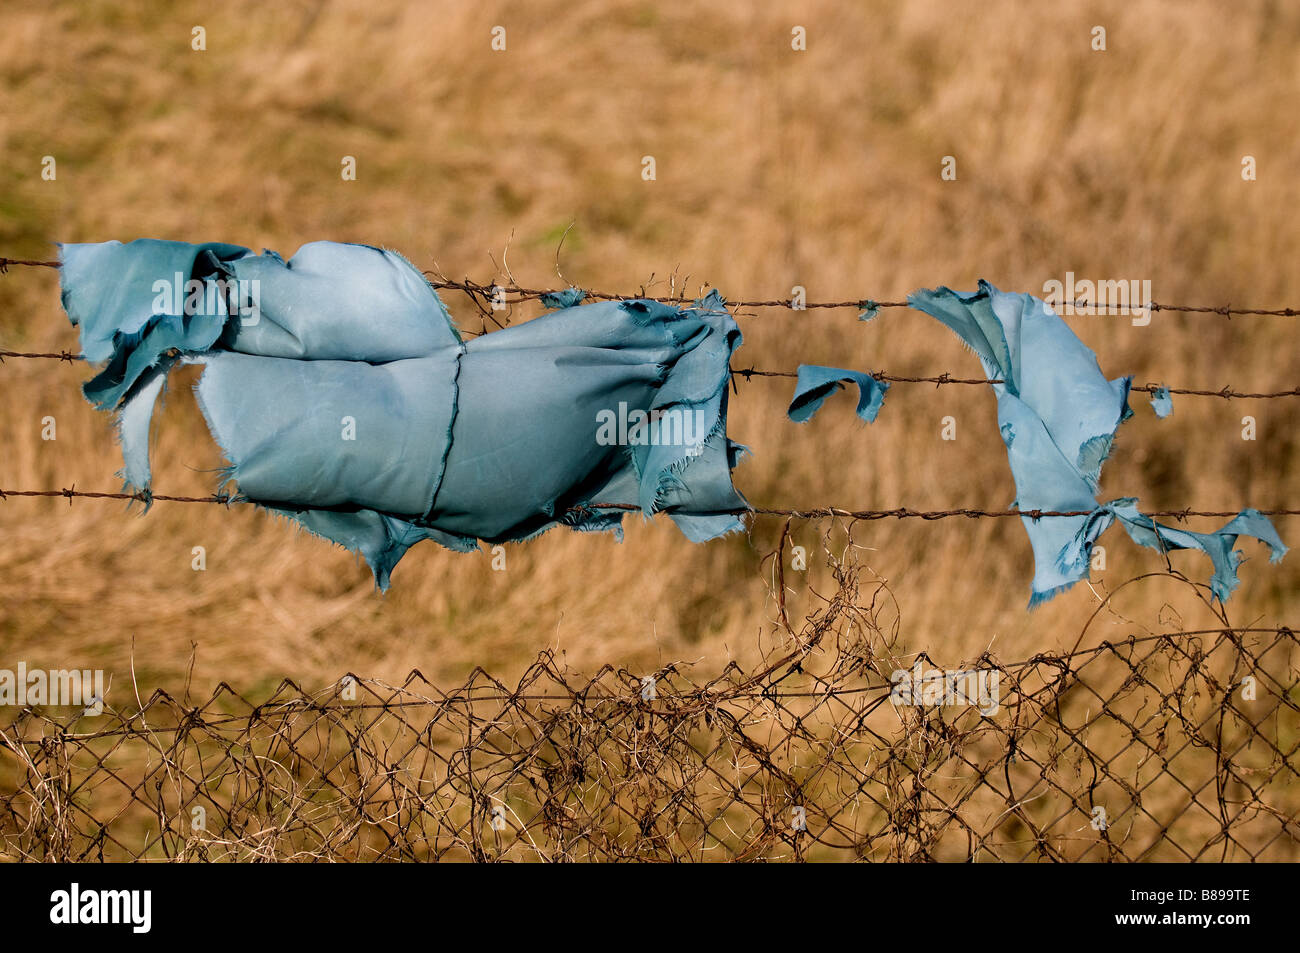 A fragment of blue cloth hanging on a barbed wire fence. - Stock Image